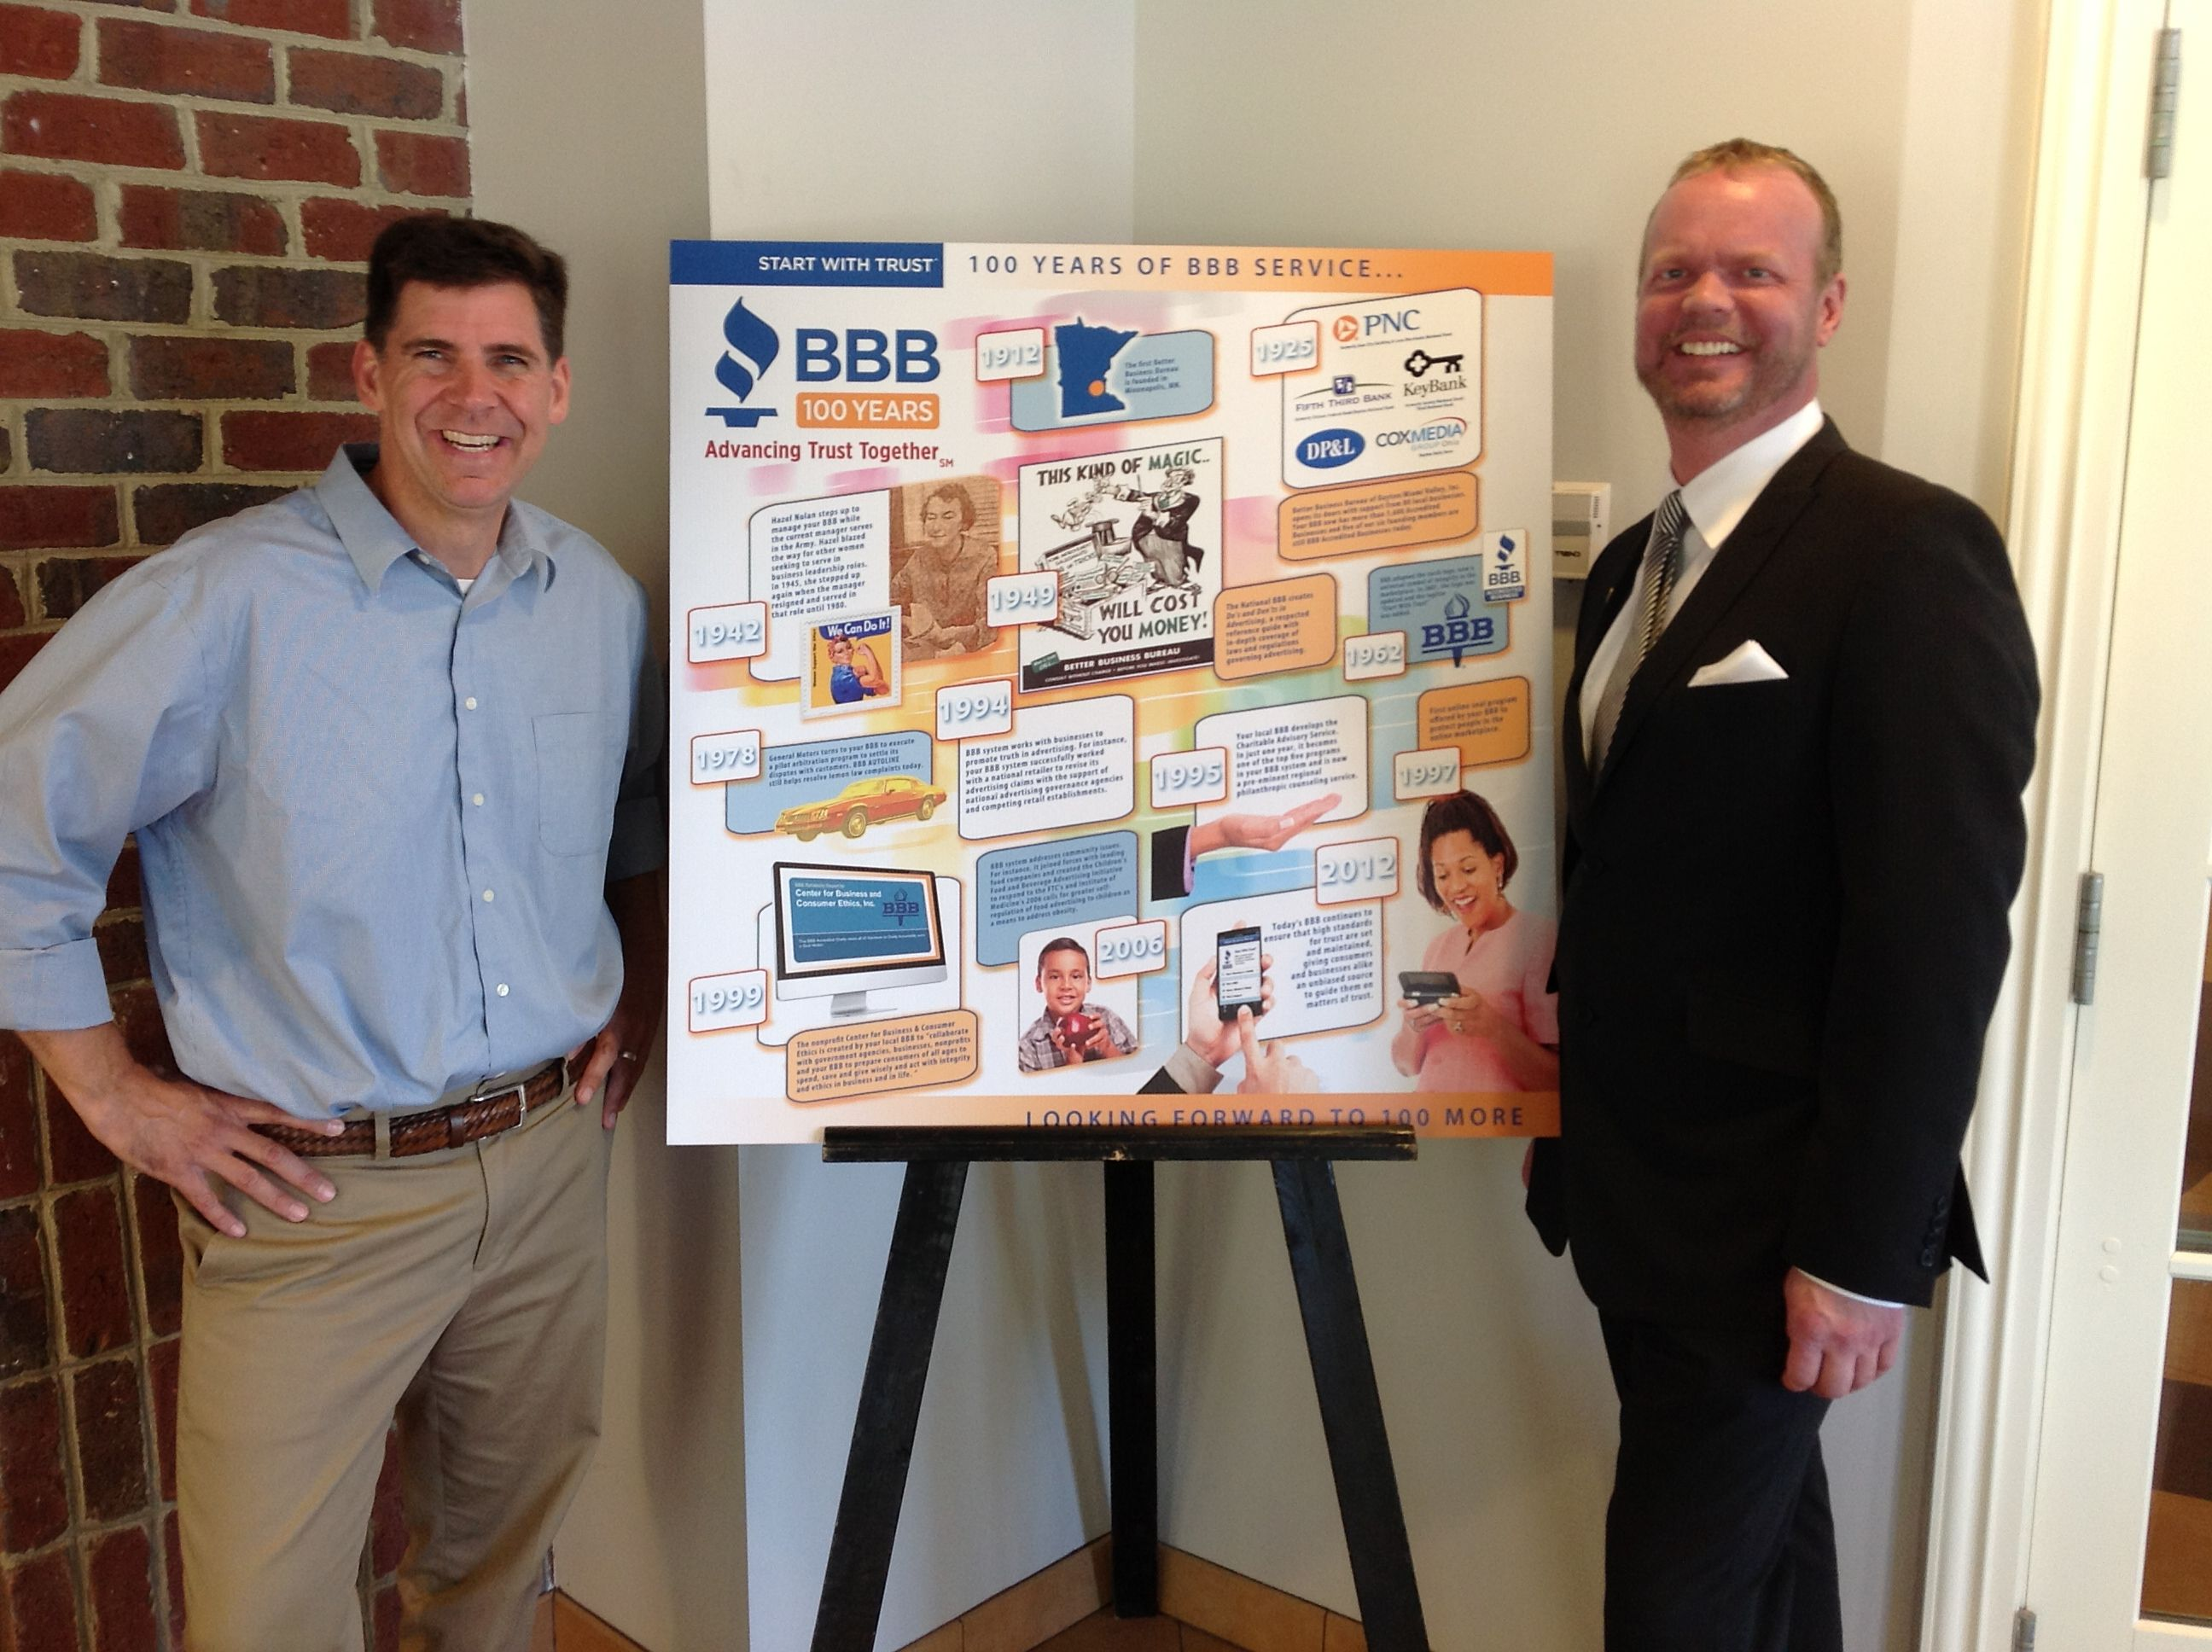 The Museum Exhibit Created By The Better Business Bureau